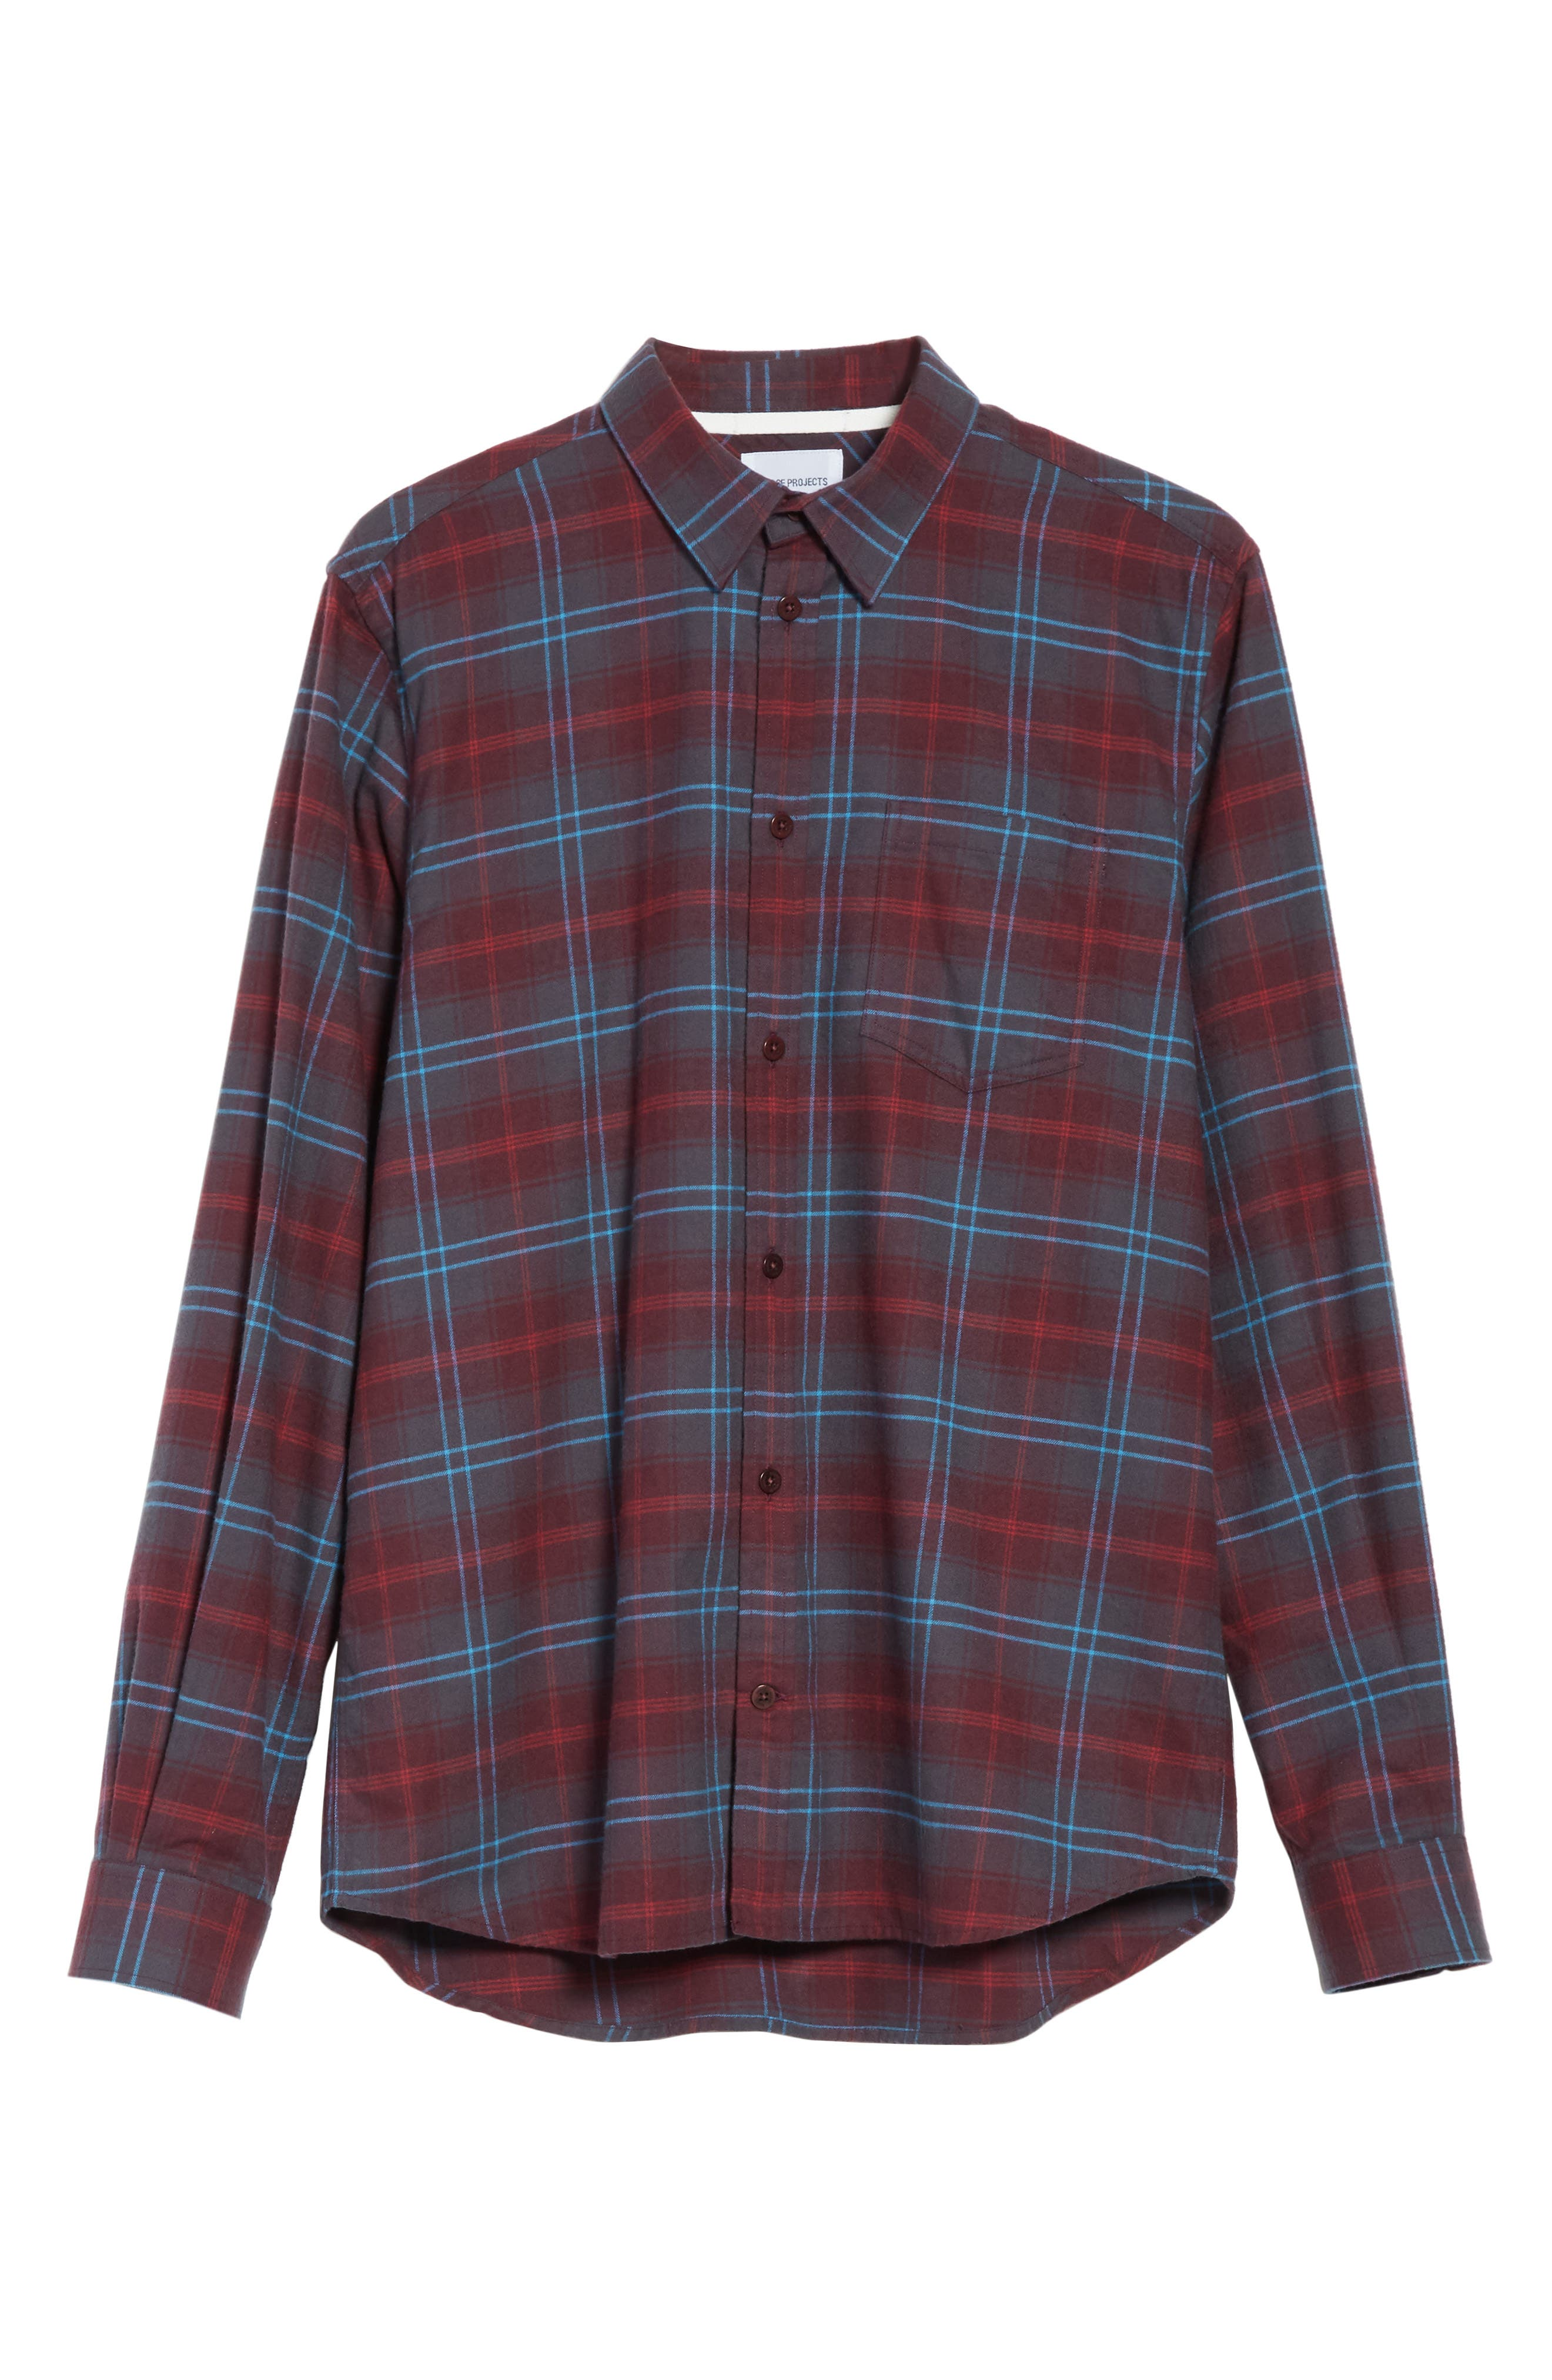 NORSE PROJECTS,                             Hans Brushed Check Shirt,                             Alternate thumbnail 6, color,                             616